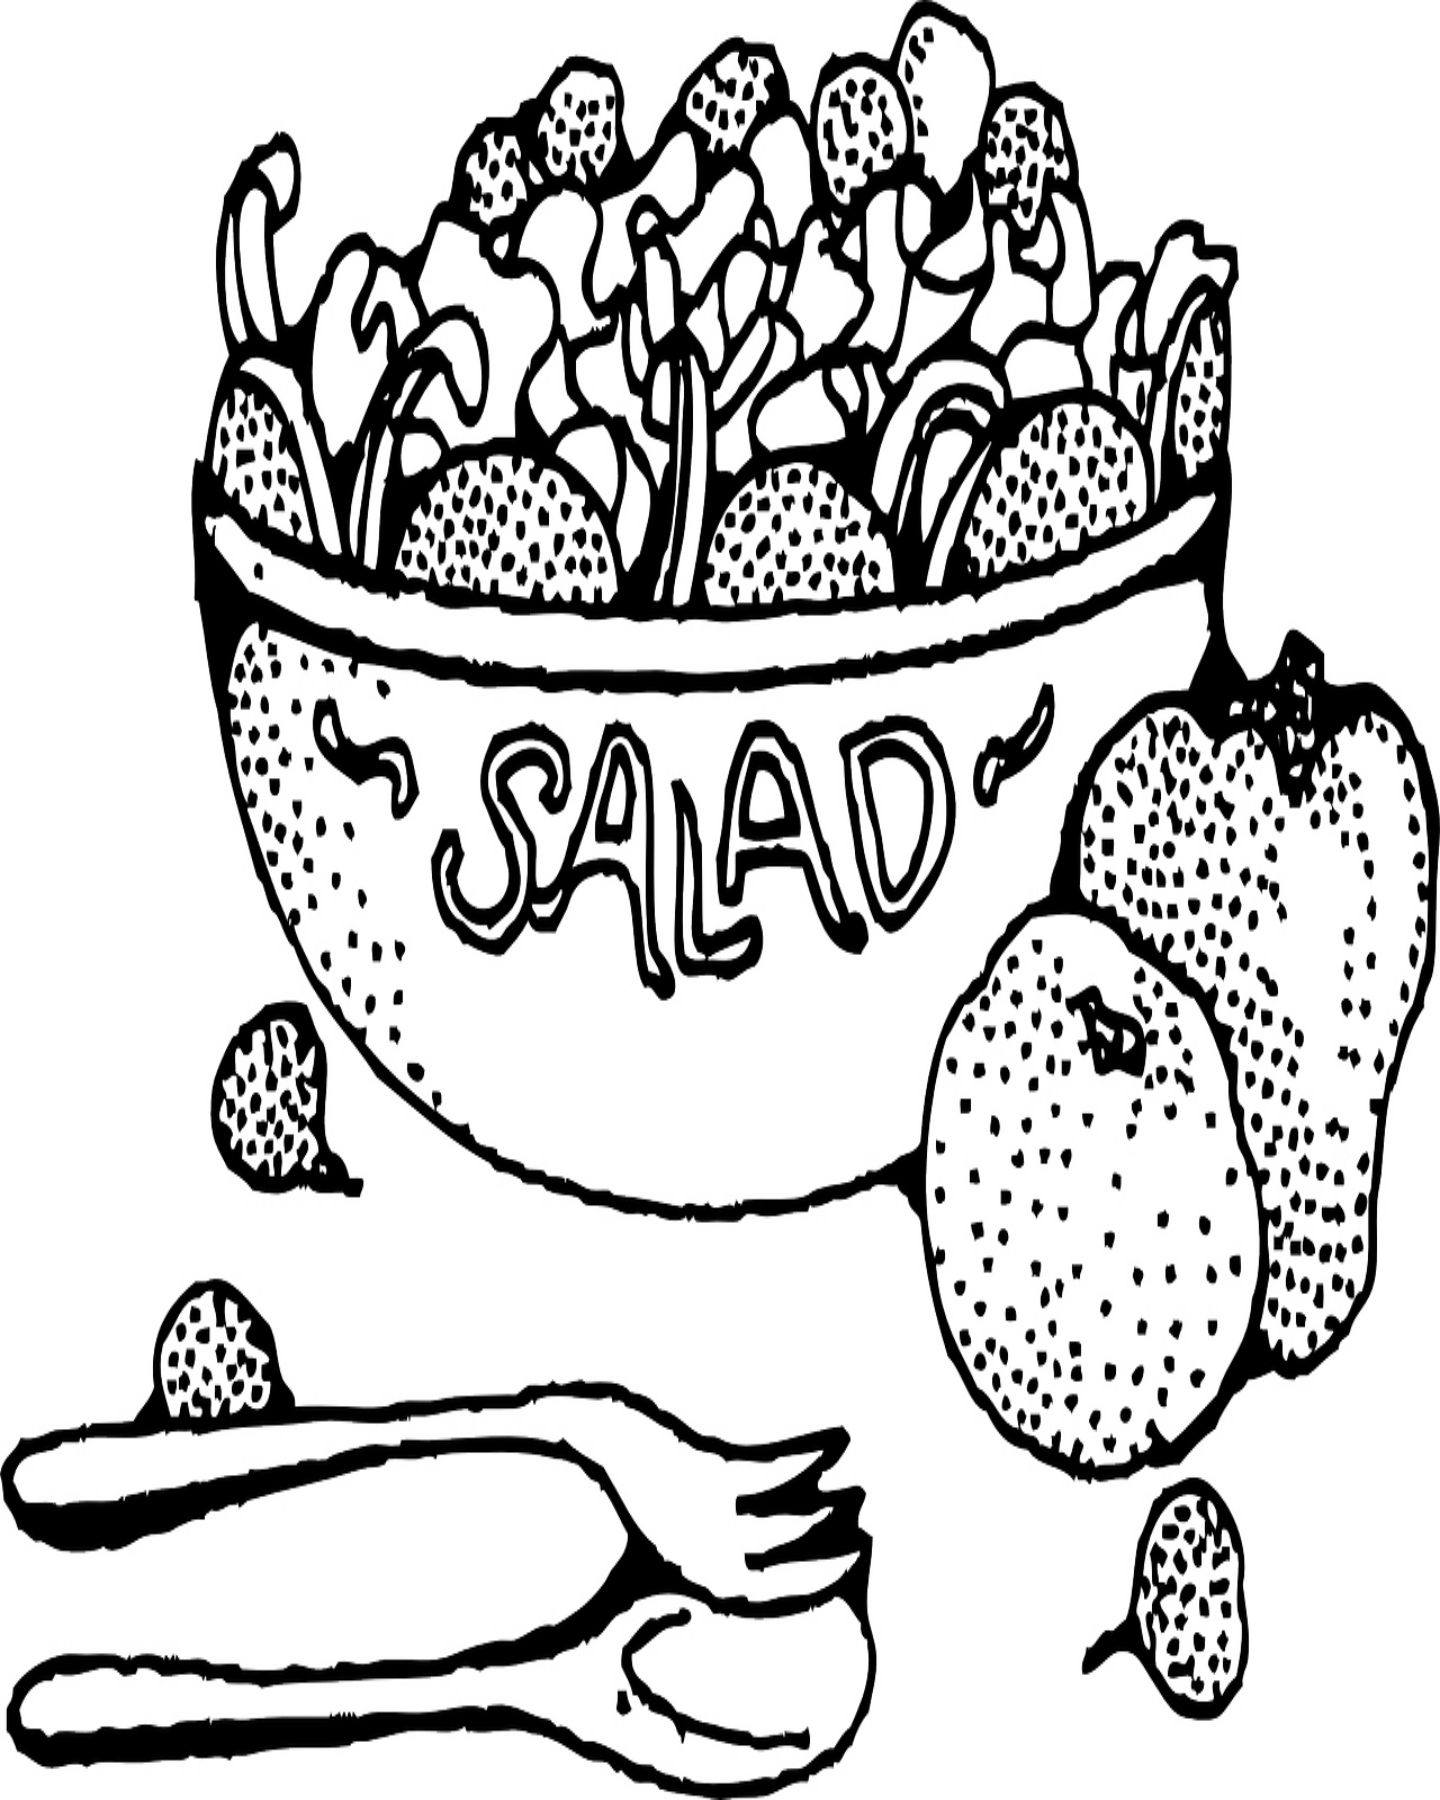 Free Printable Fruit Salad Bowl Coloring Page | Kids - Family - Home ...